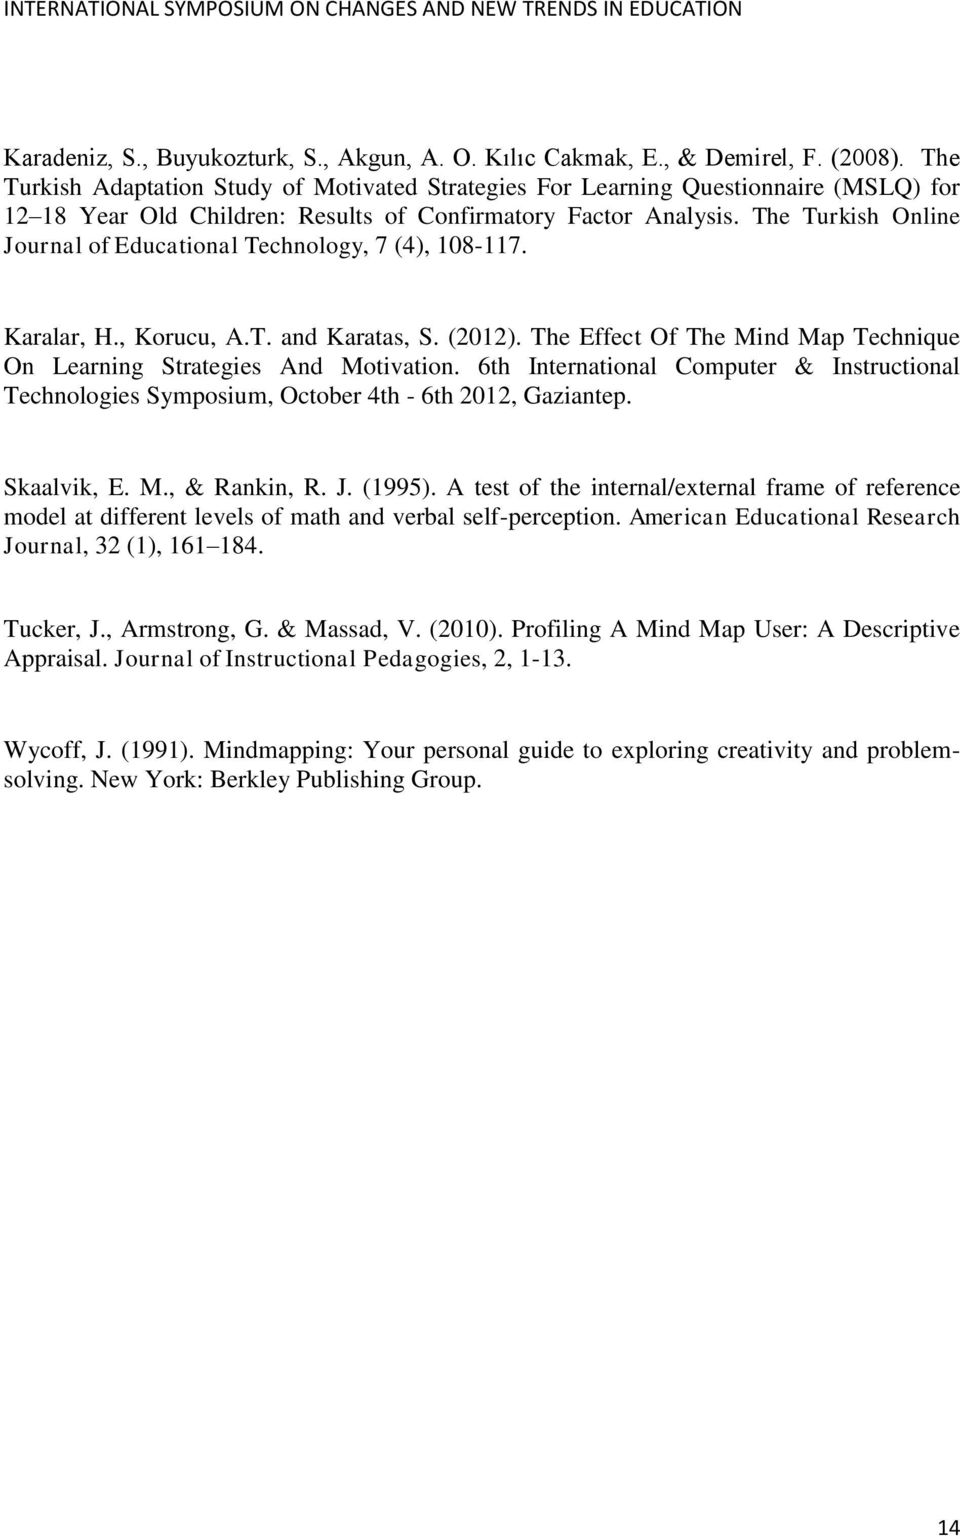 The Turkish Online Journal of Educational Technology, 7 (4), 108-117. Karalar, H., Korucu, A.T. and Karatas, S. (2012). The Effect Of The Mind Map Technique On Learning Strategies And Motivation.